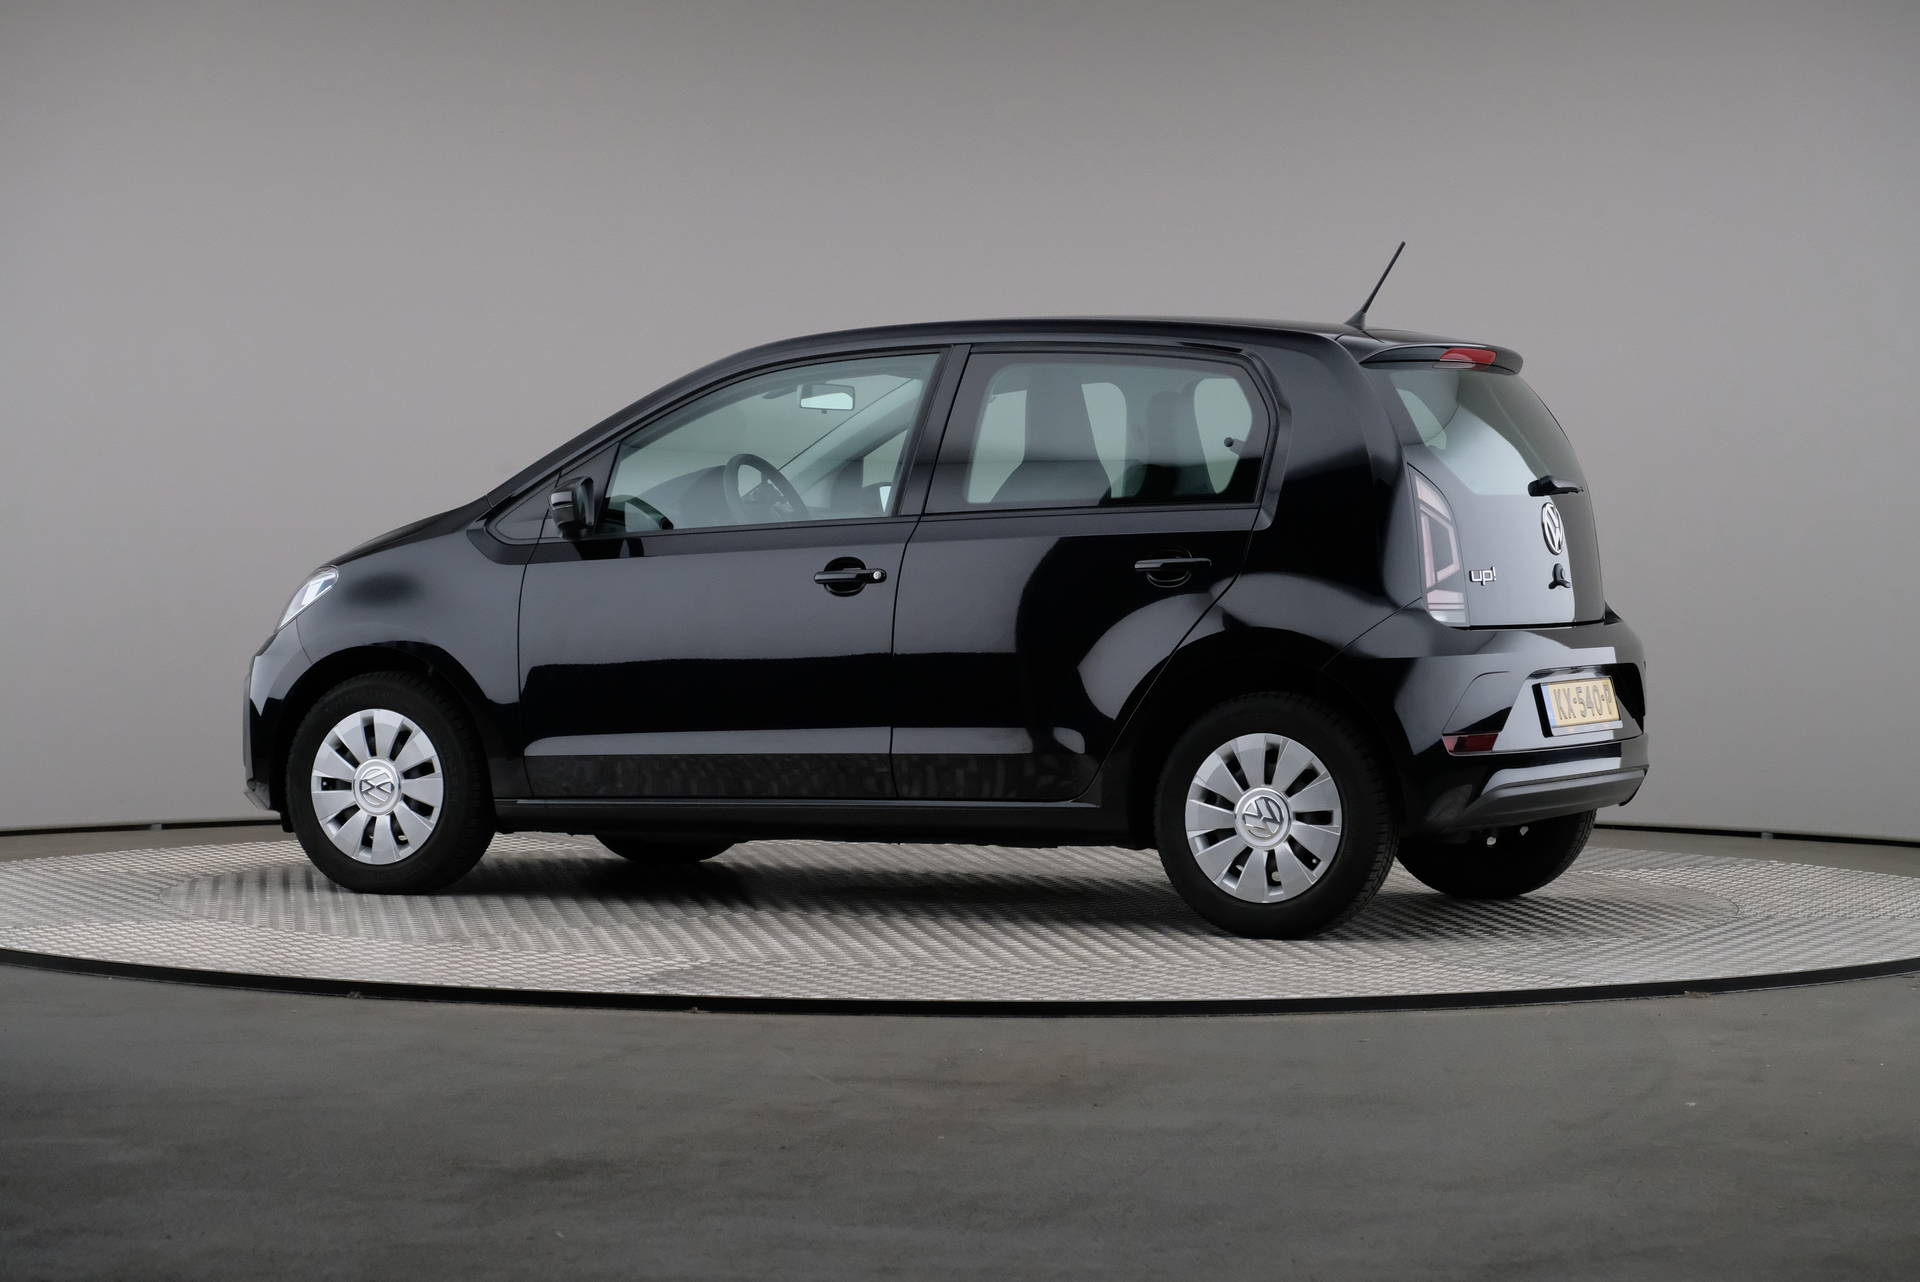 Volkswagen up! 1.0 44kW Move up! BlueMotion Technology, Airconditioning, 360-image8